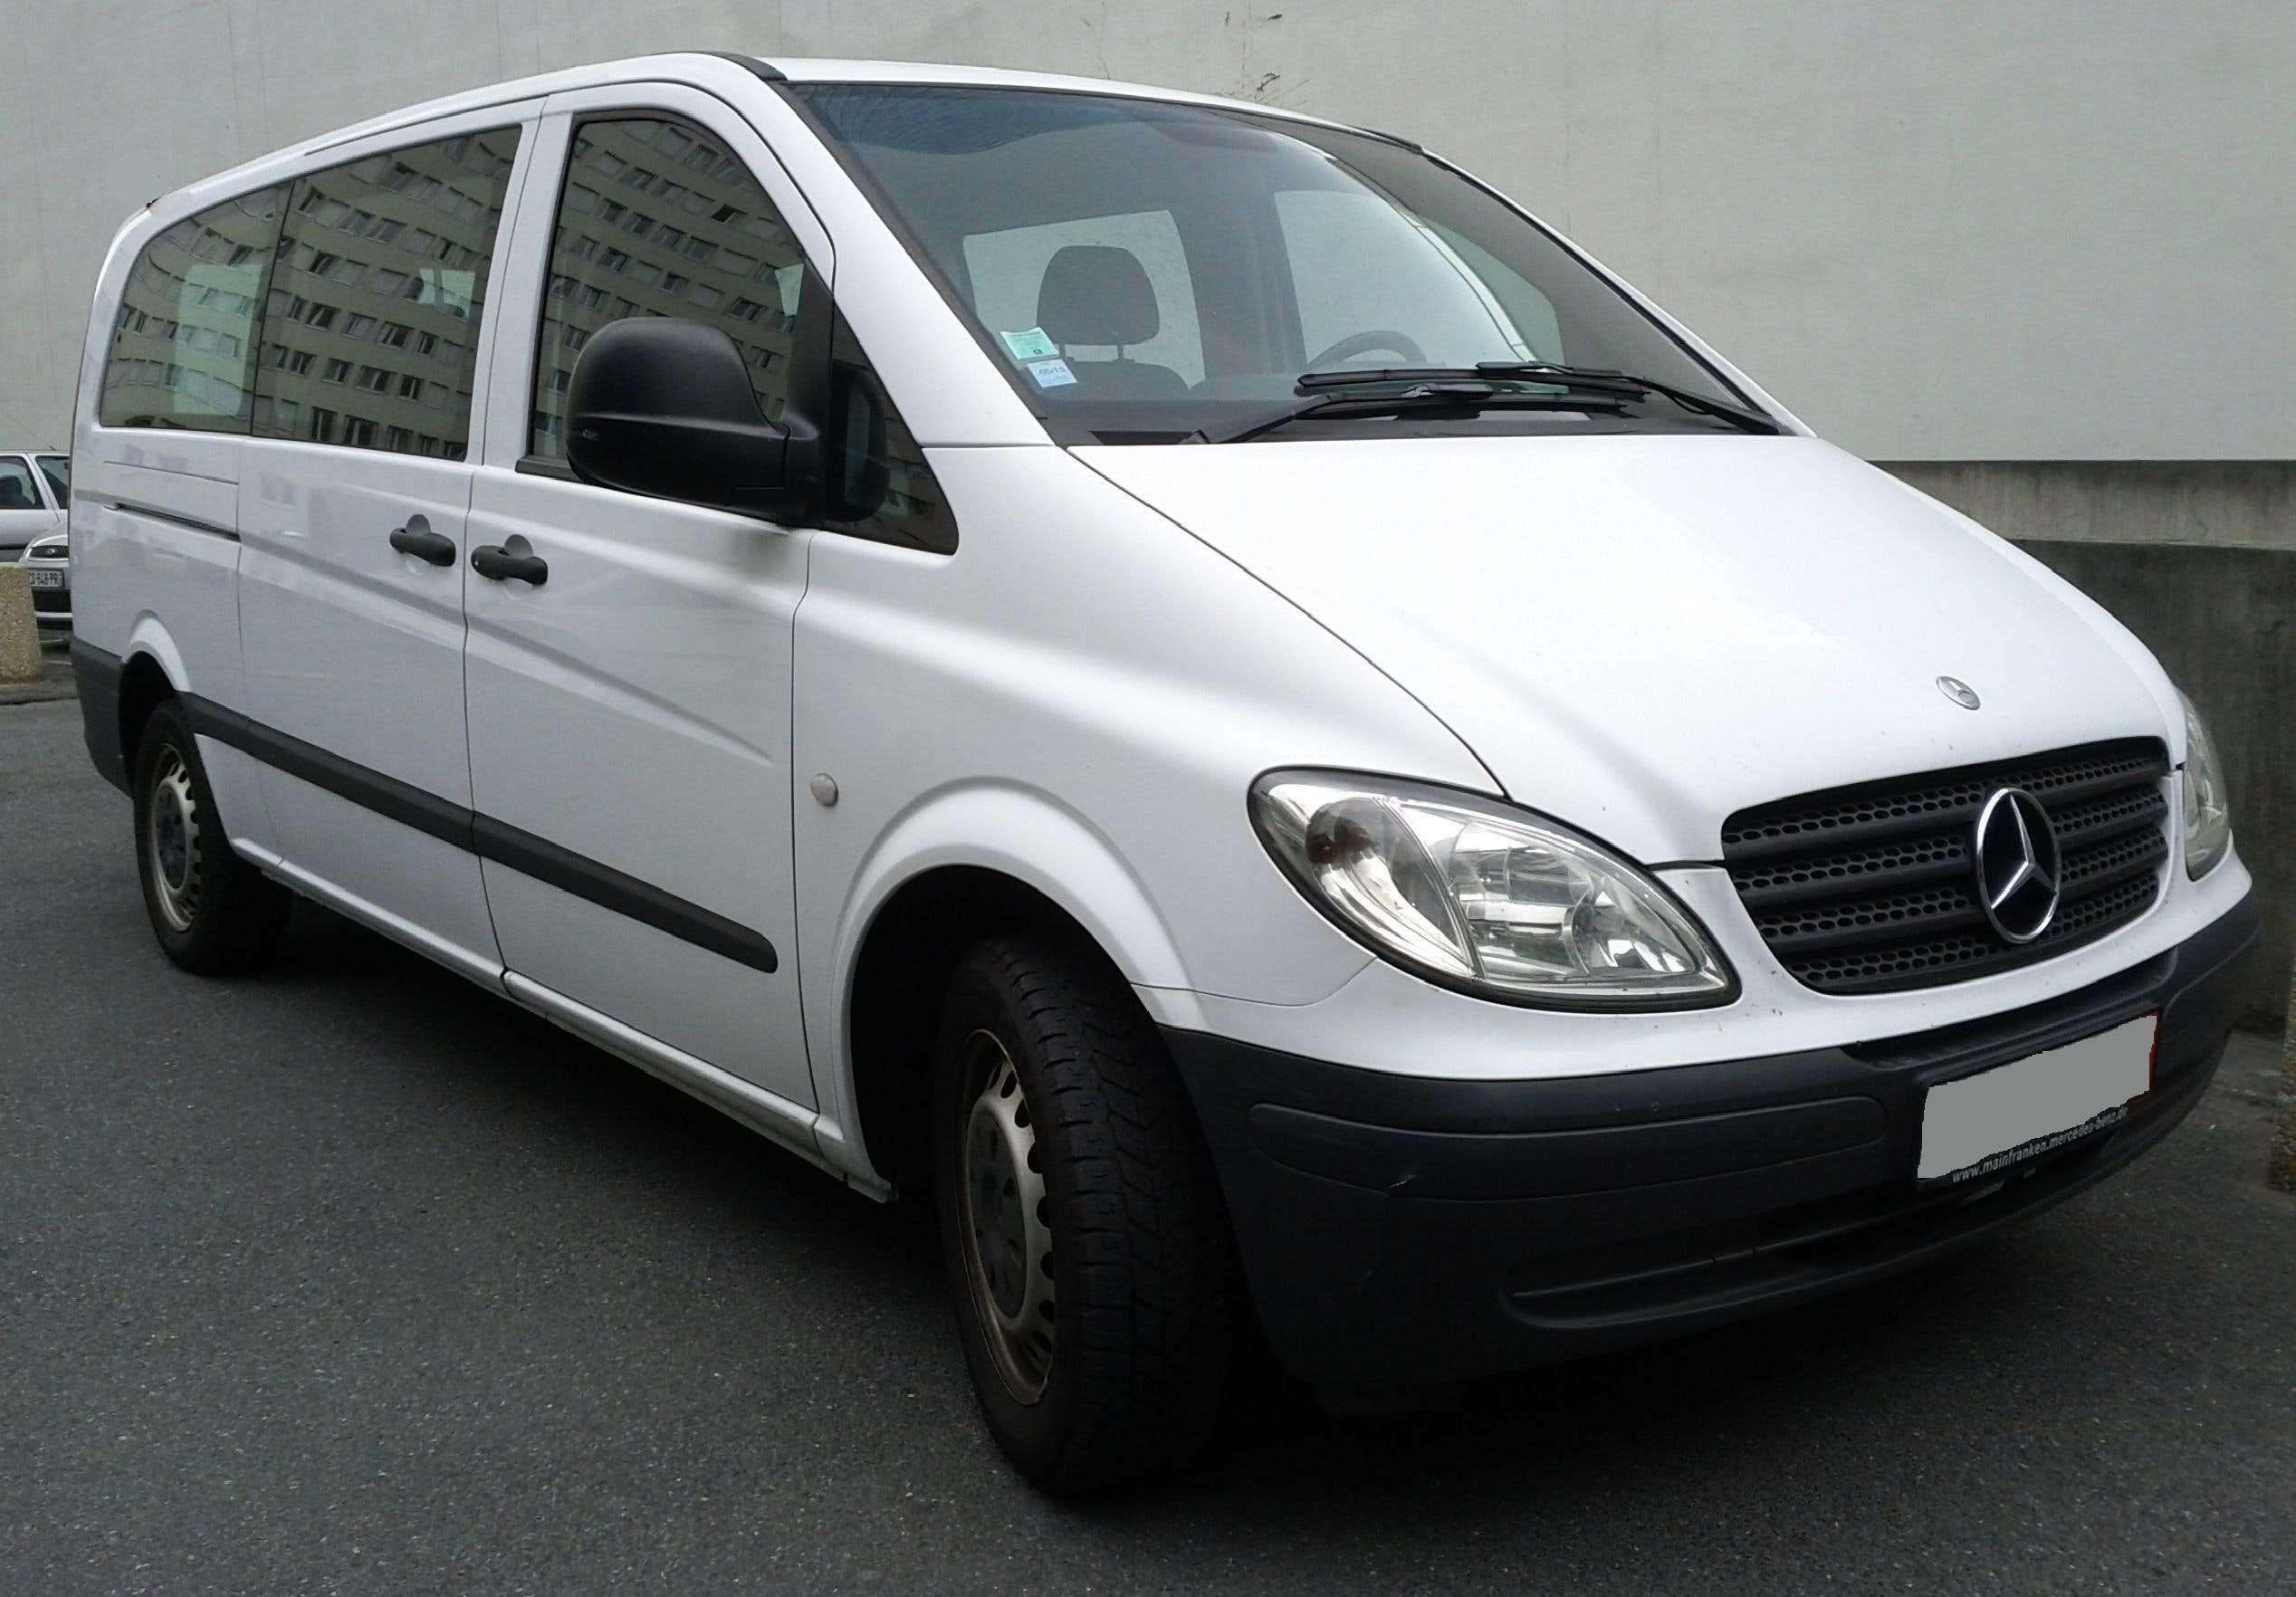 Mercedes Vito extralong - 9 places , 2006, Diesel, 9 places et plus